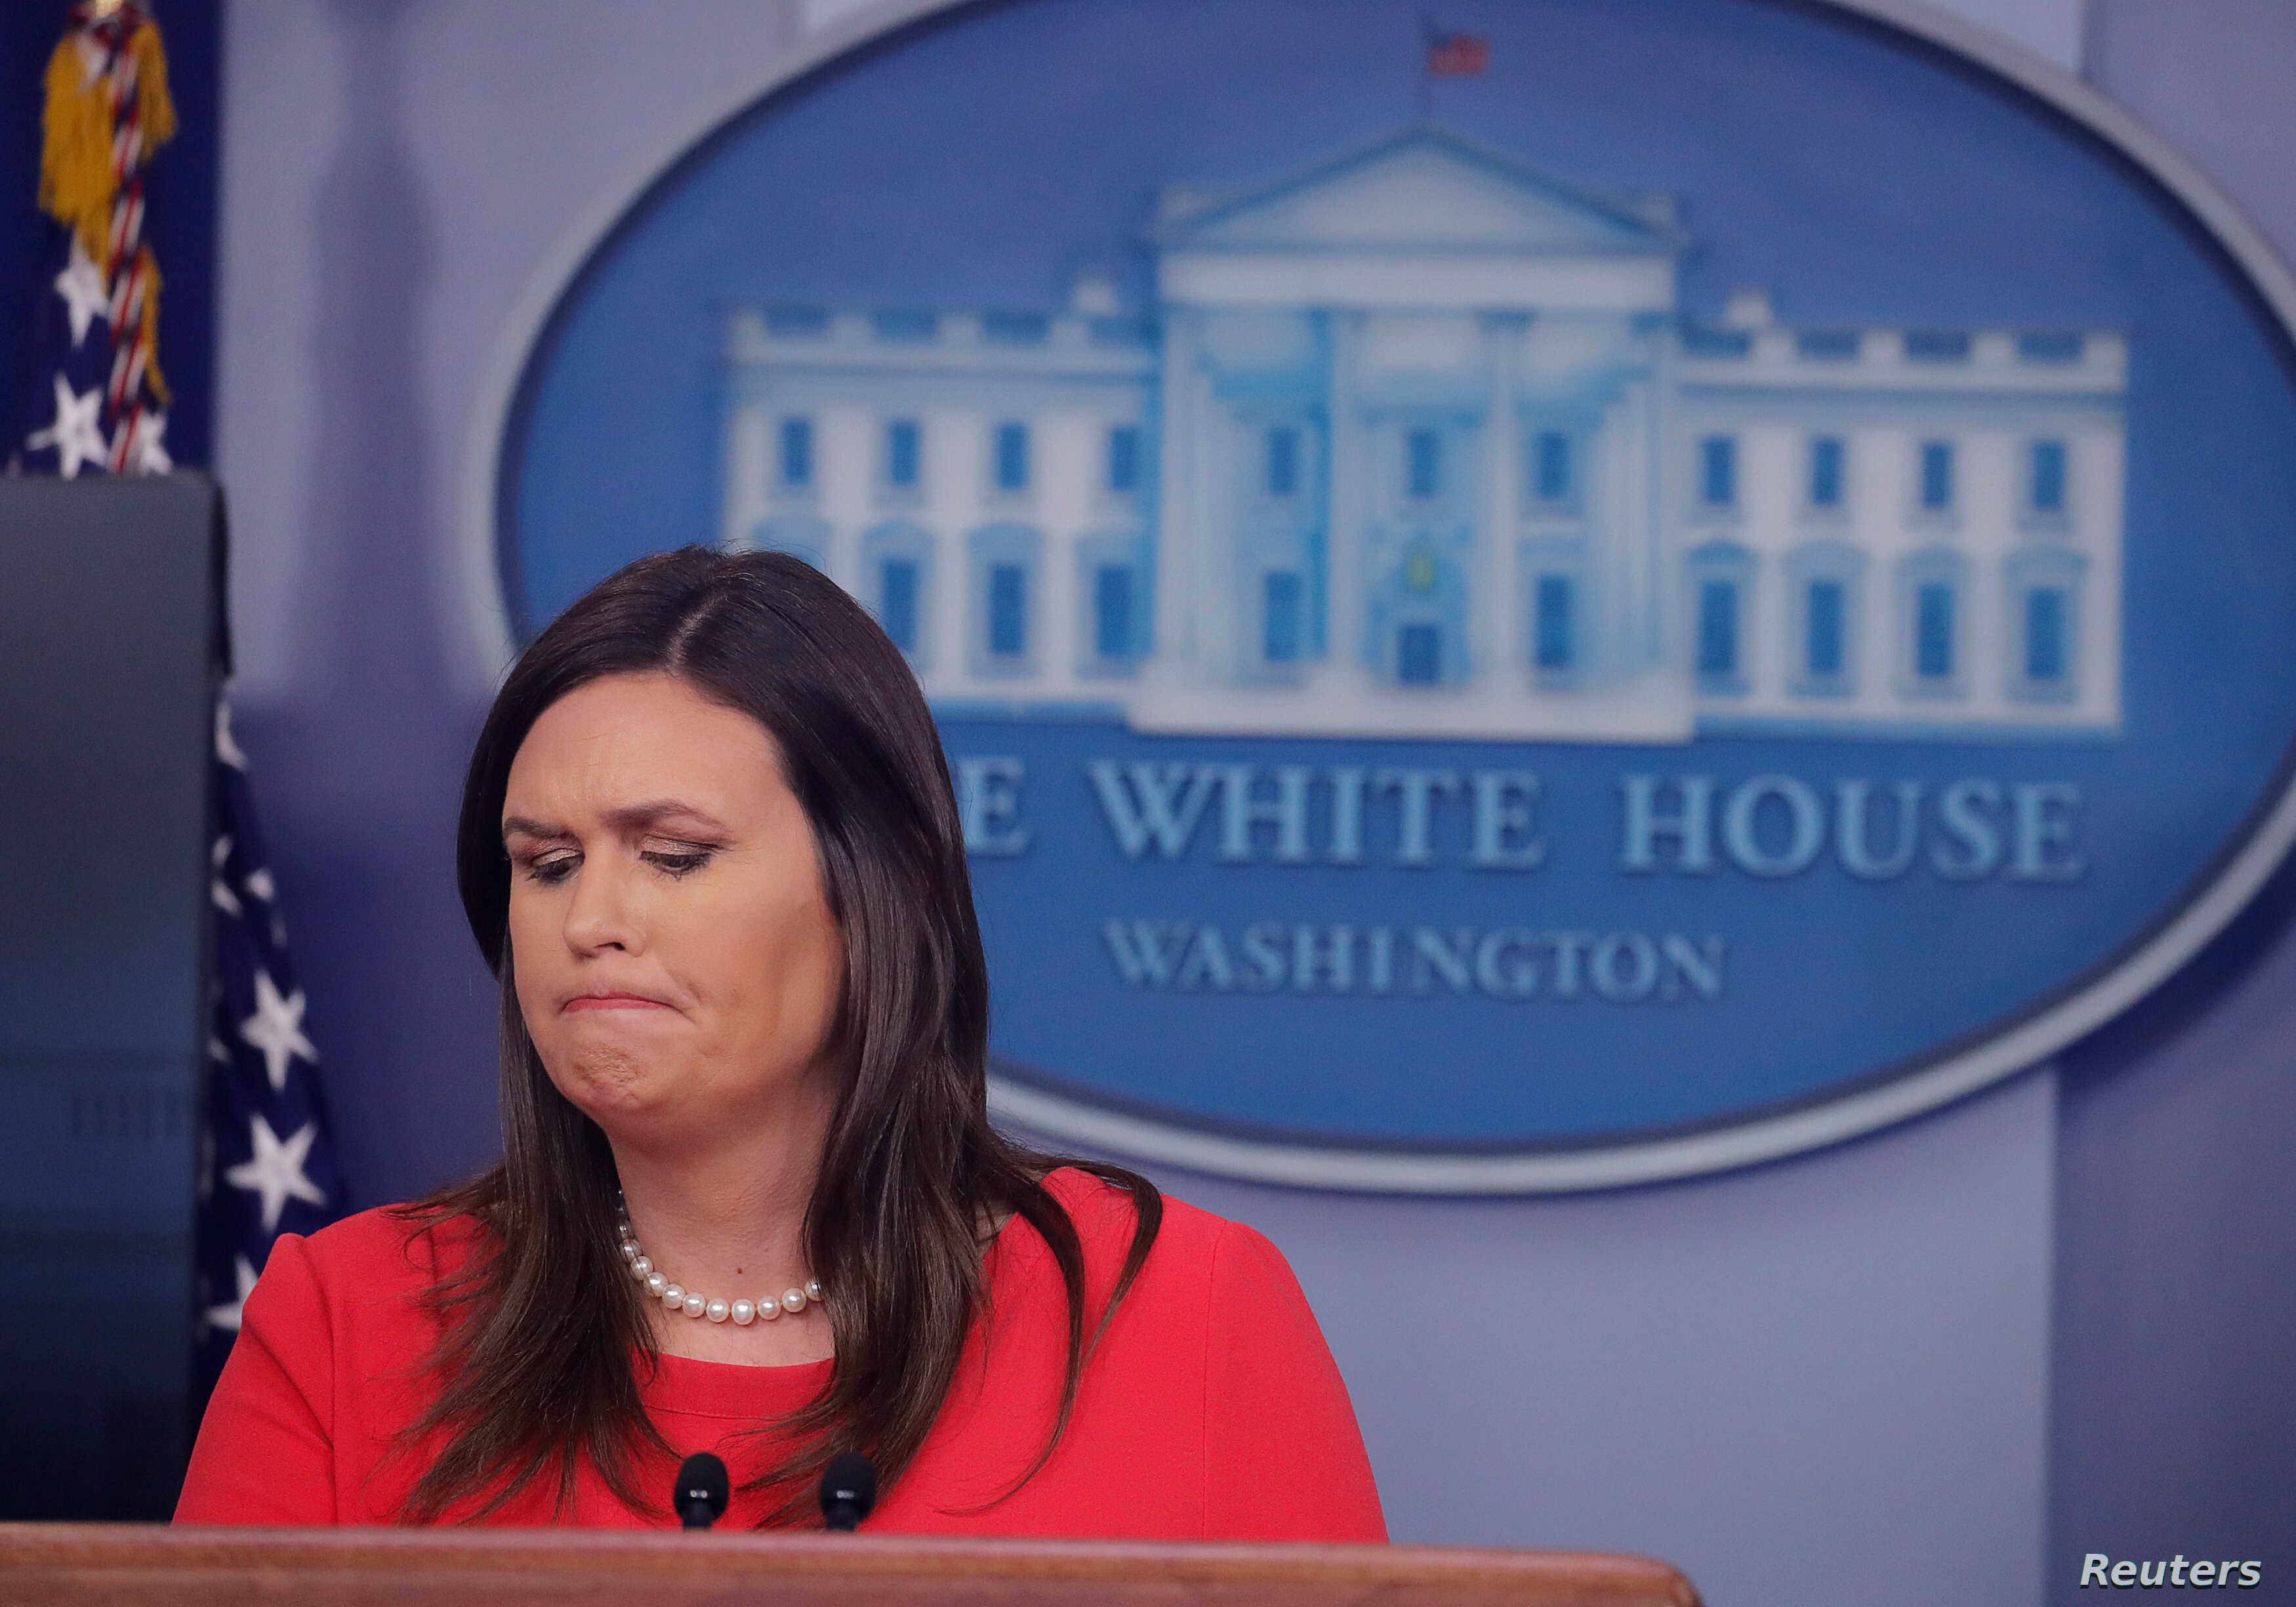 White House Press Secretary Sarah Sanders addresses reporters during a press briefing at the White House in Washington, Jan. 28, 2019.